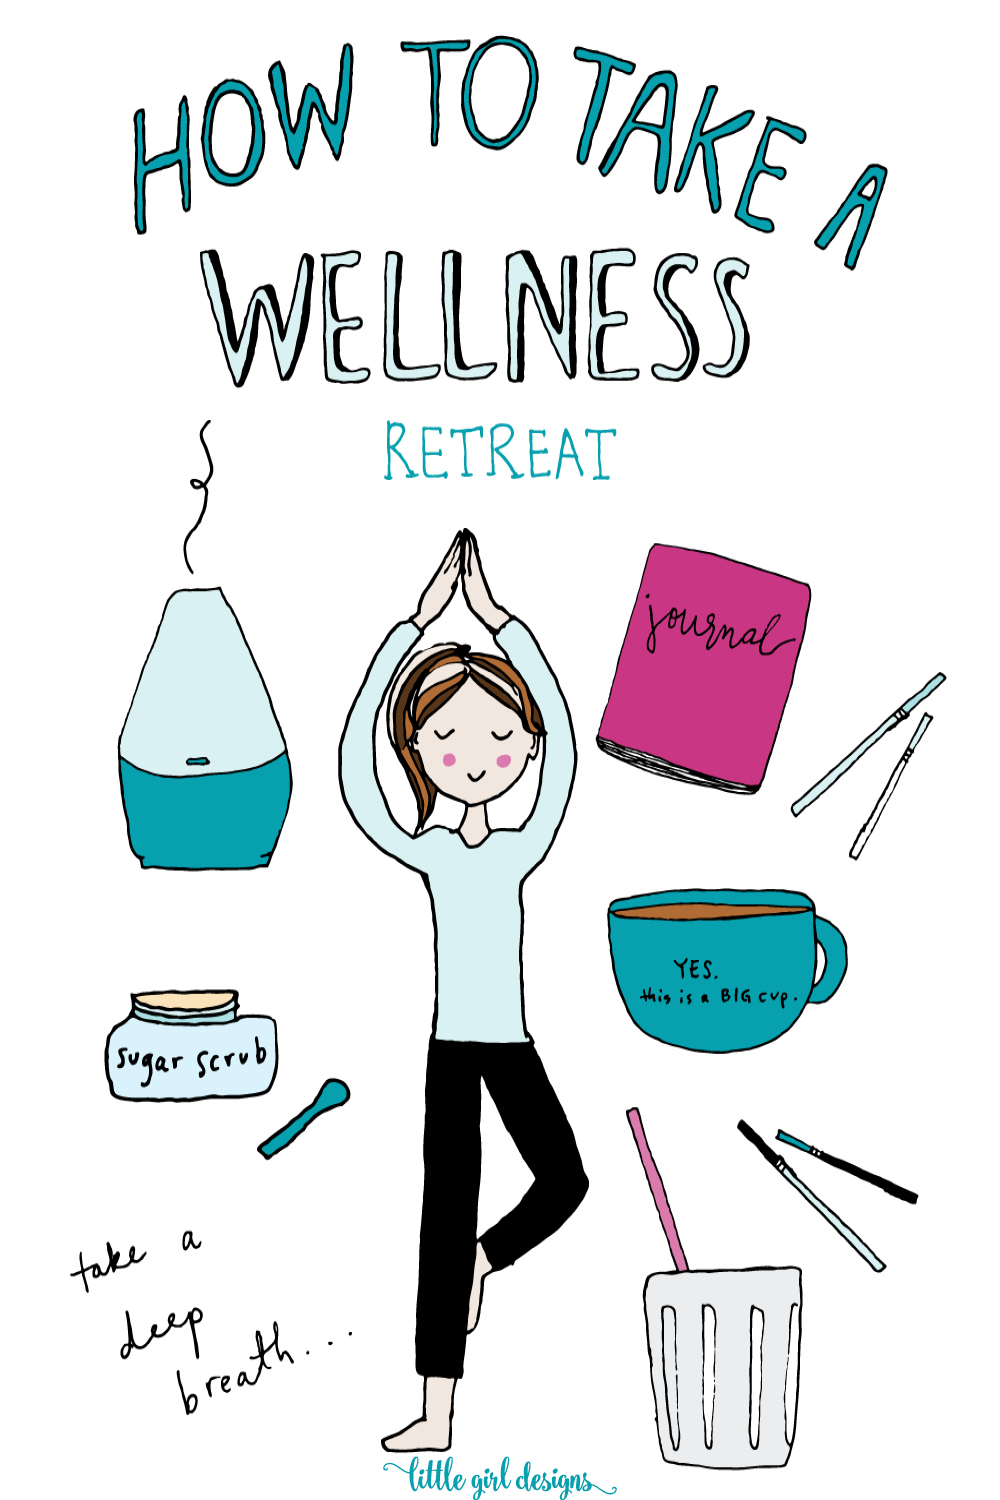 Yes, please! I need a personal retreat, and I love this idea to make my own. Wellness and health are important to me because if I don't take care of me, who will?! Still, it's hard to prioritize taking this time for myself sometimes. Love these ideas and that I can do them at home. :)